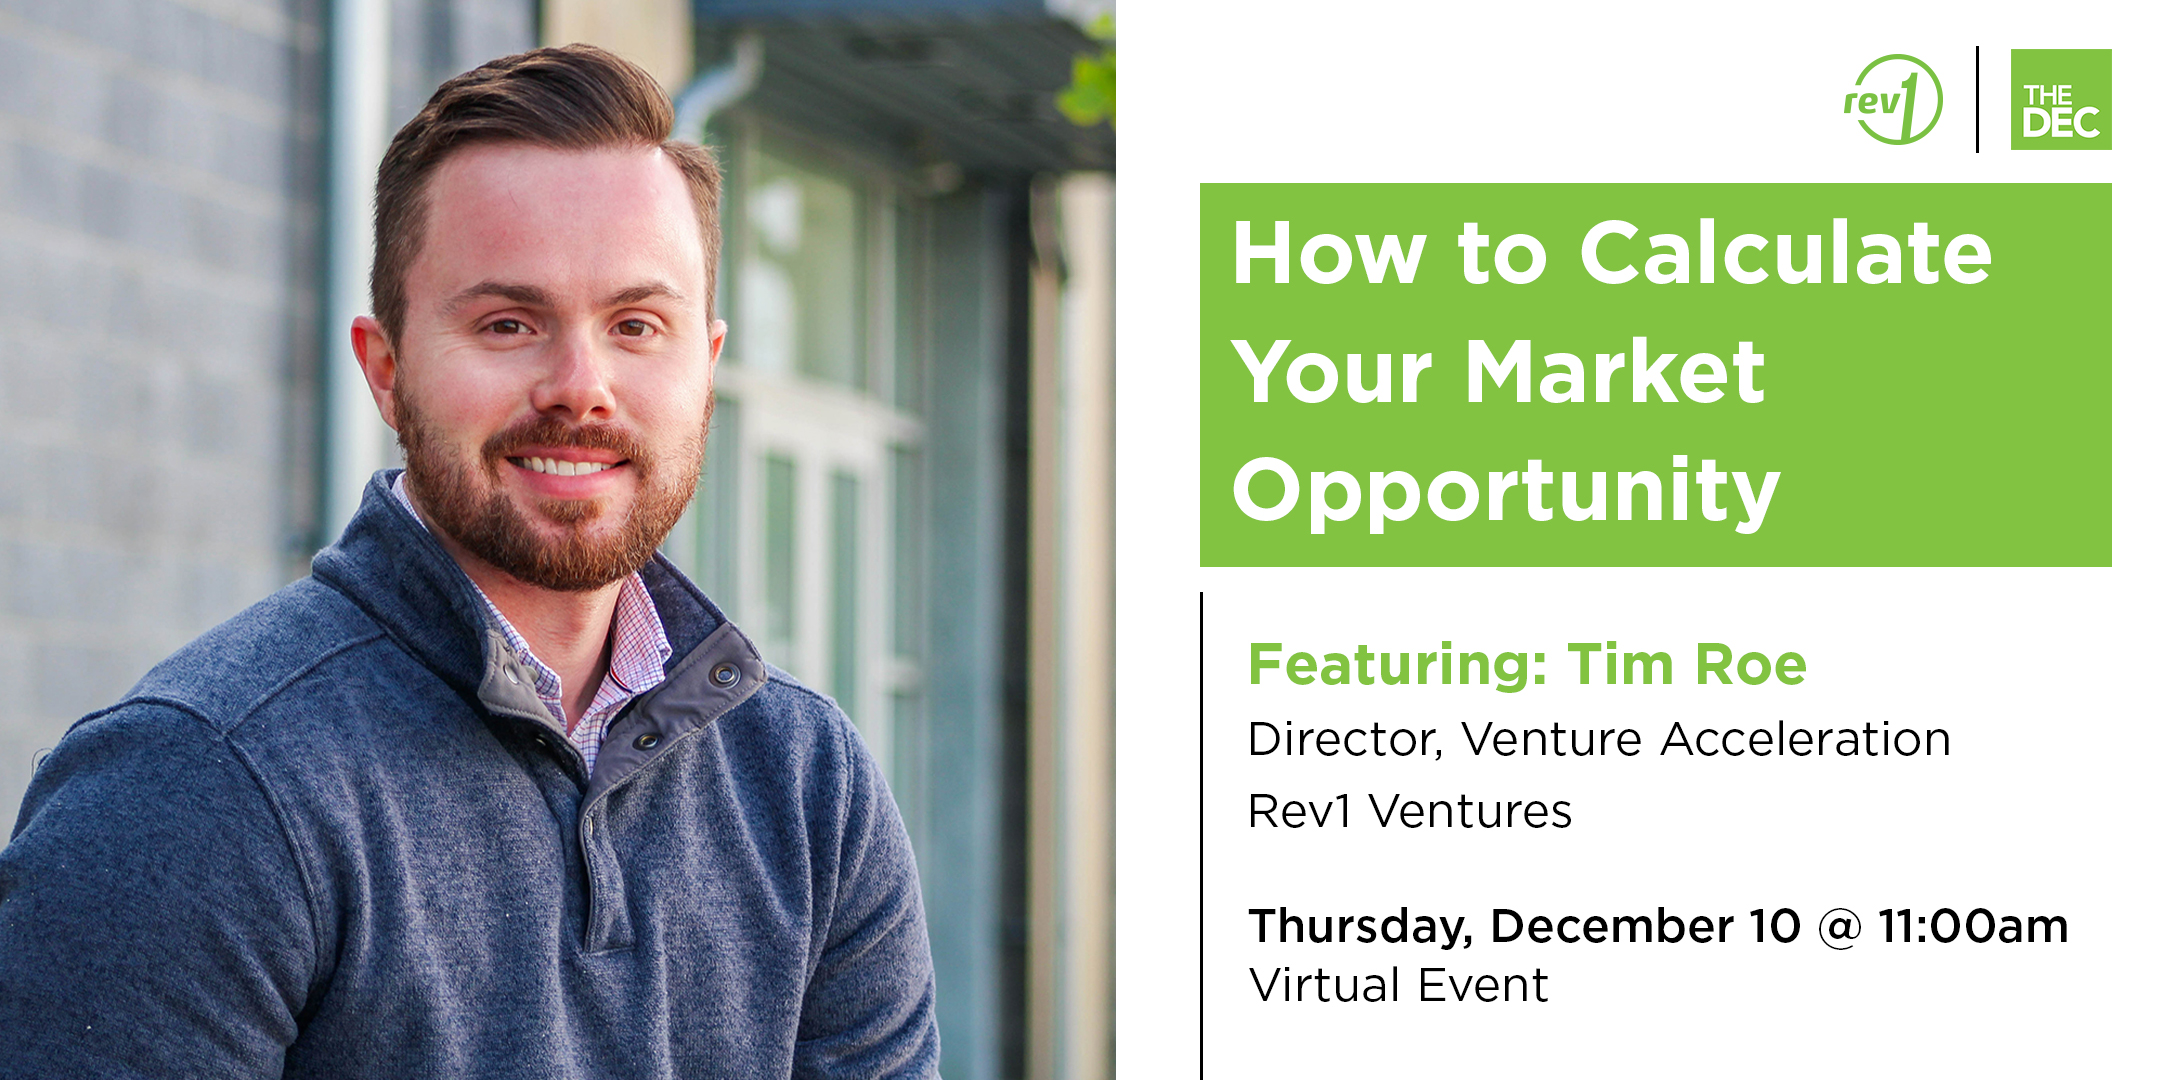 WATCH NOW: How To Calculate Your Market Opportunity Virtual Event